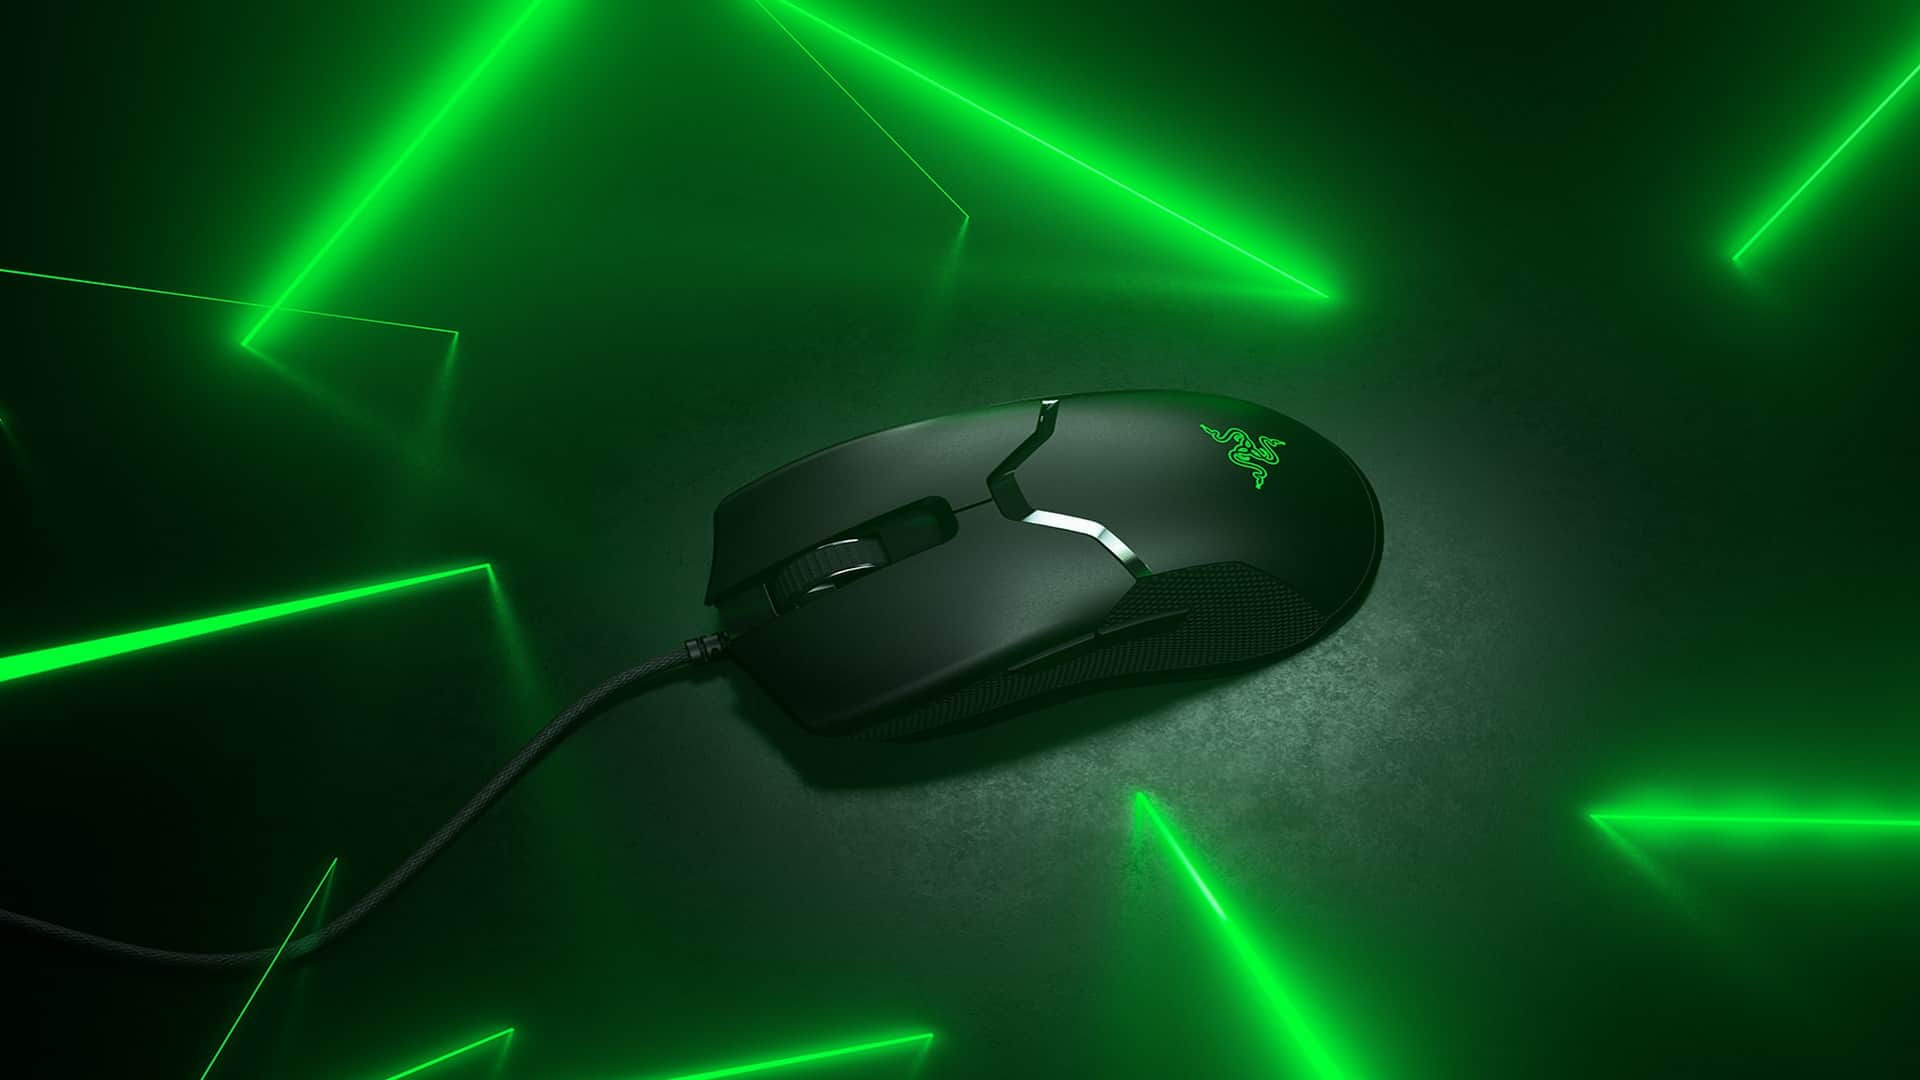 Meet the Razer Viper – Featuring The Fastest Actuation In Gaming